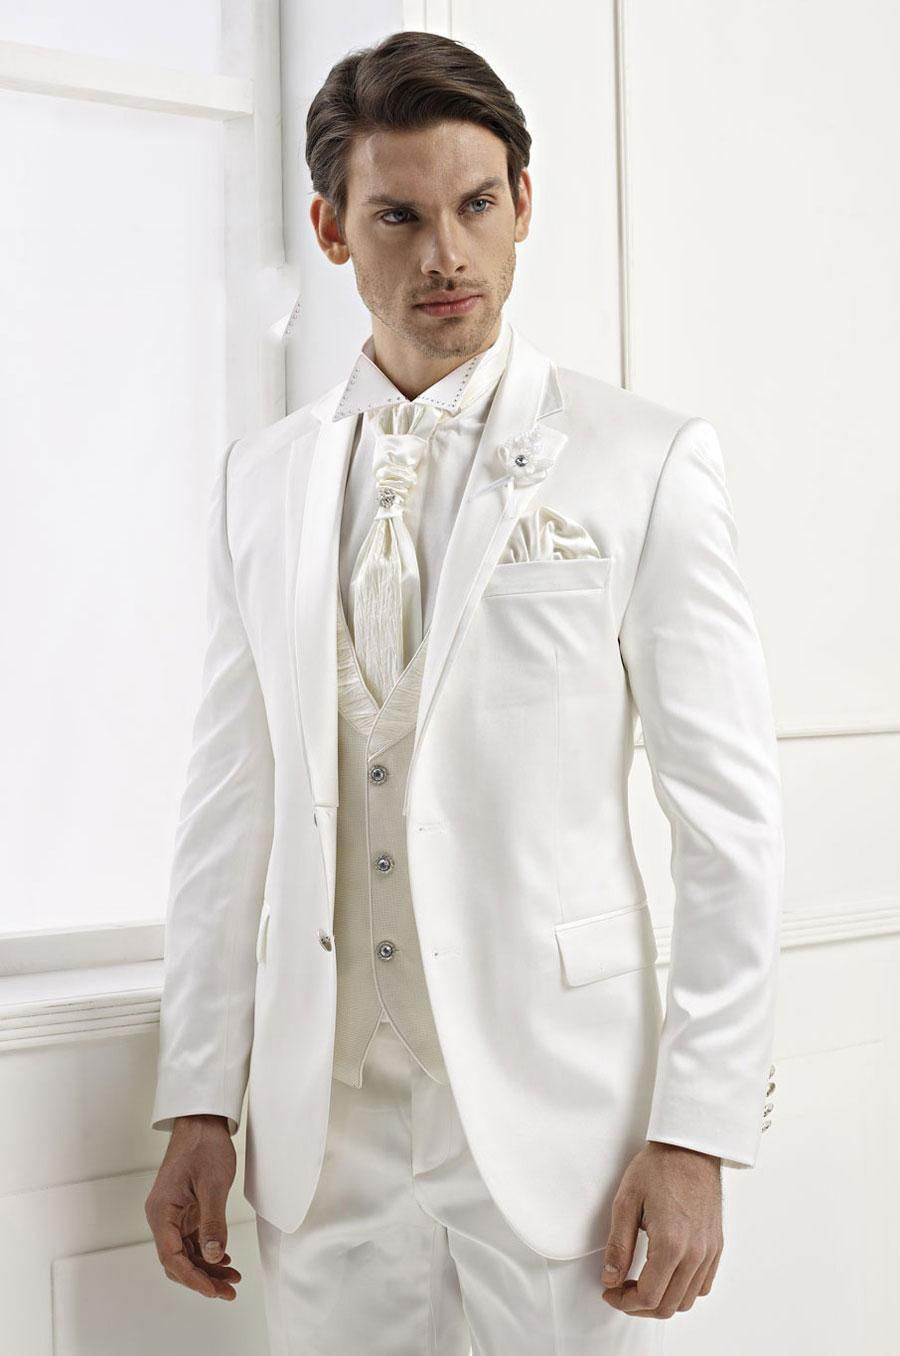 Latest Coat Pant Designs Italian White Wedding Suits For Men Slim Fit Skinny 3 Piece Custom